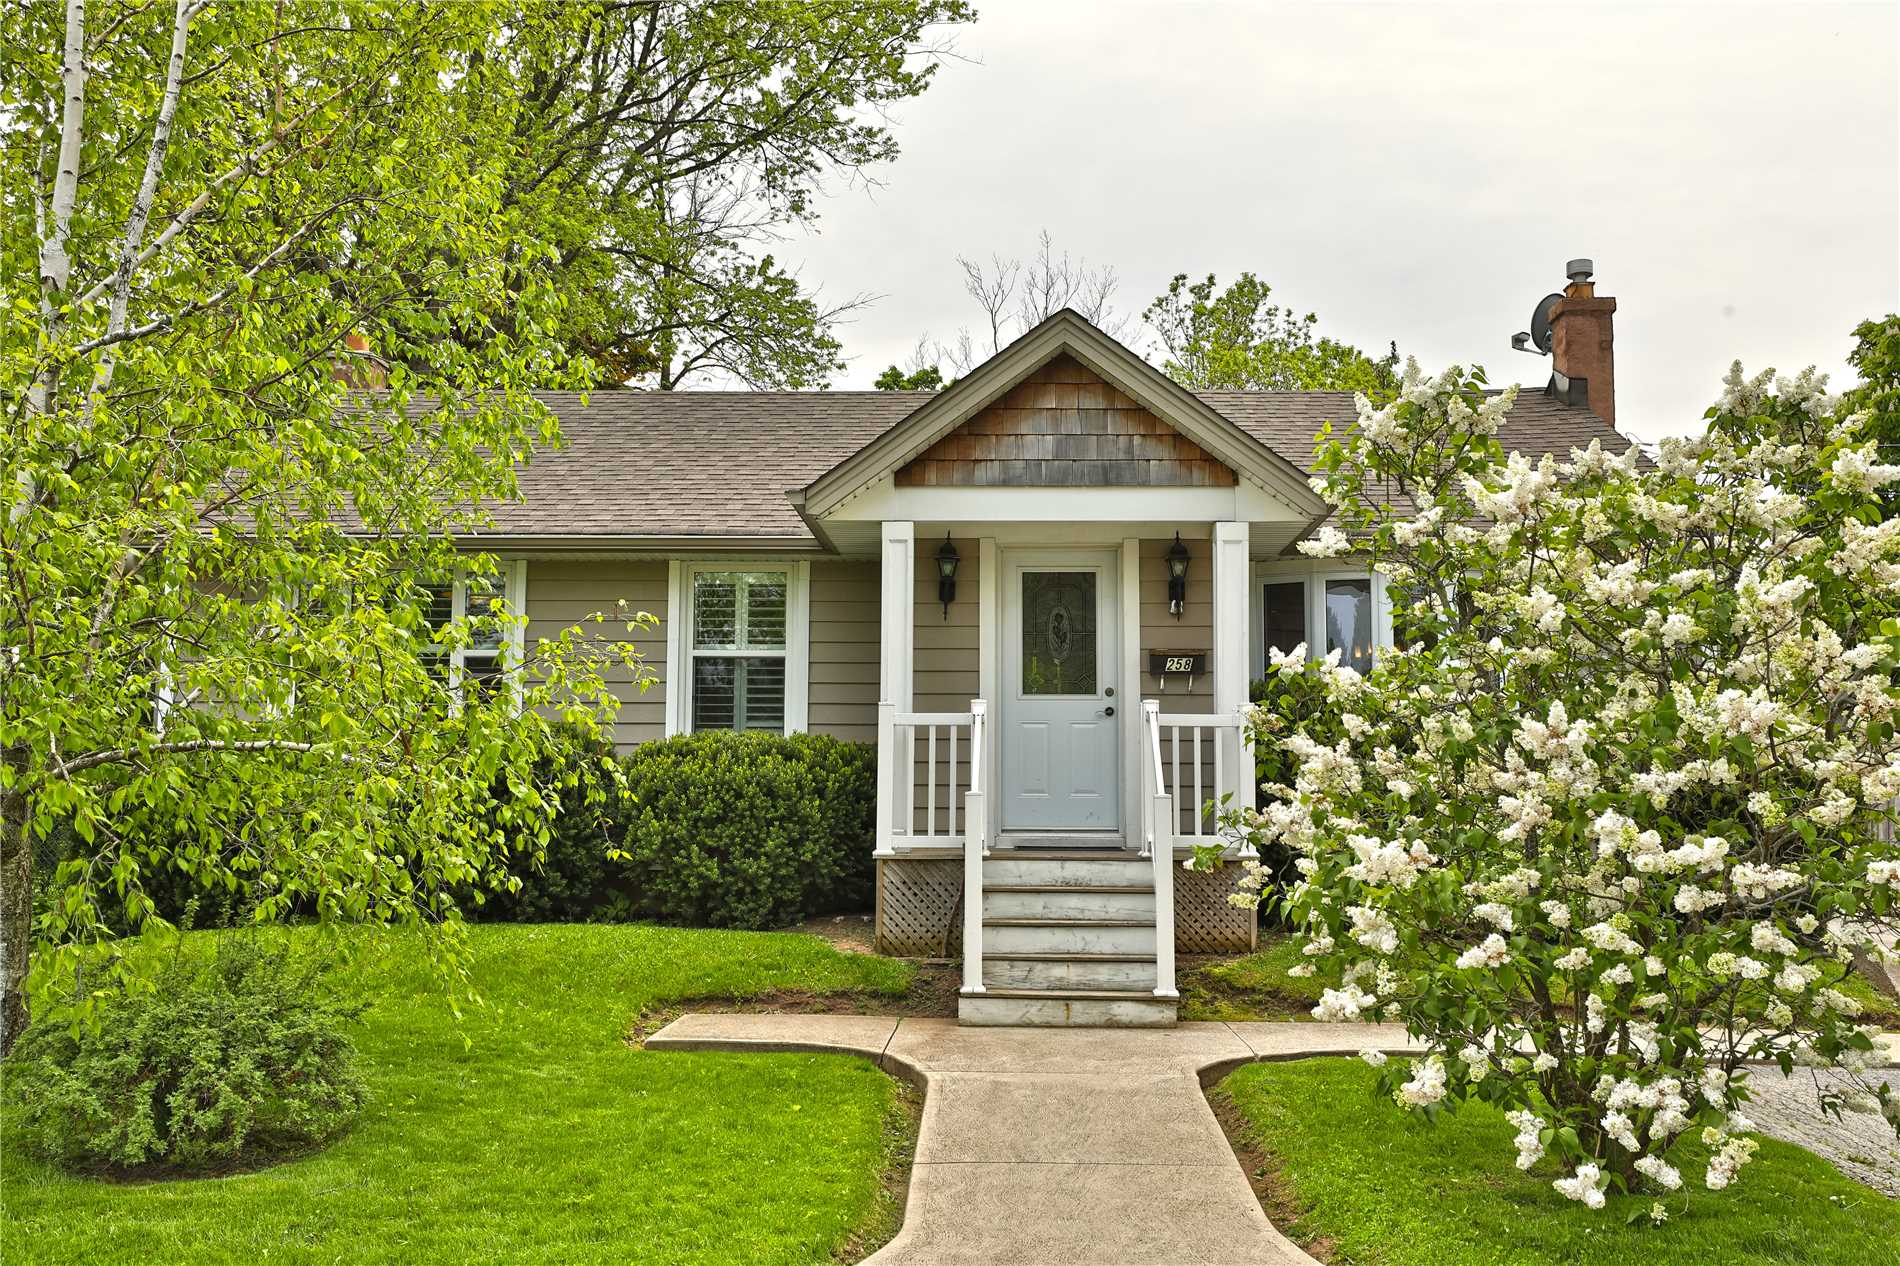 Bungalow in Halton